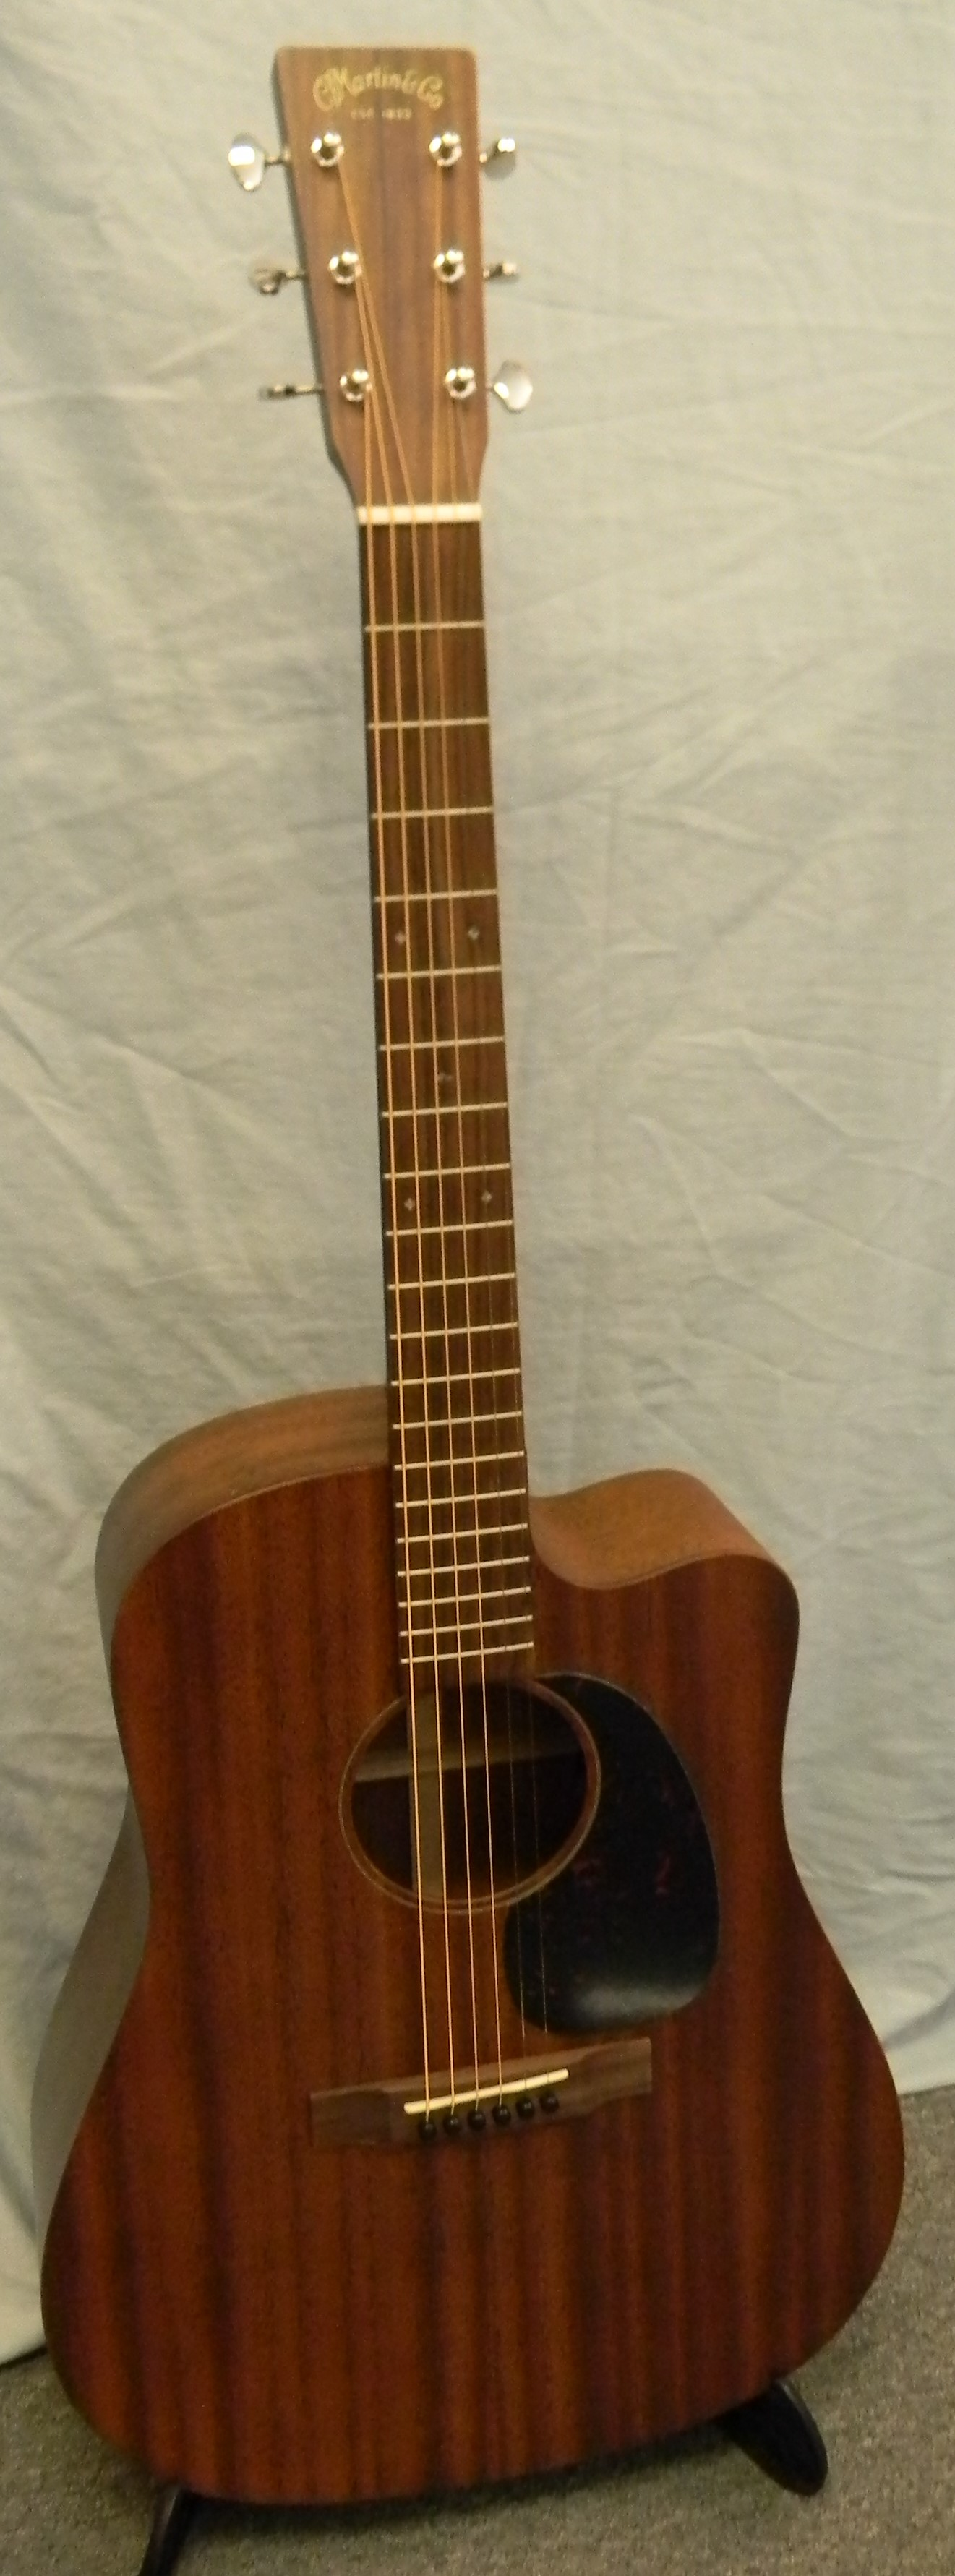 DC 15ME. All solid mahogany with Fishman Matrix VT Enhance pickup system. $1,799.00